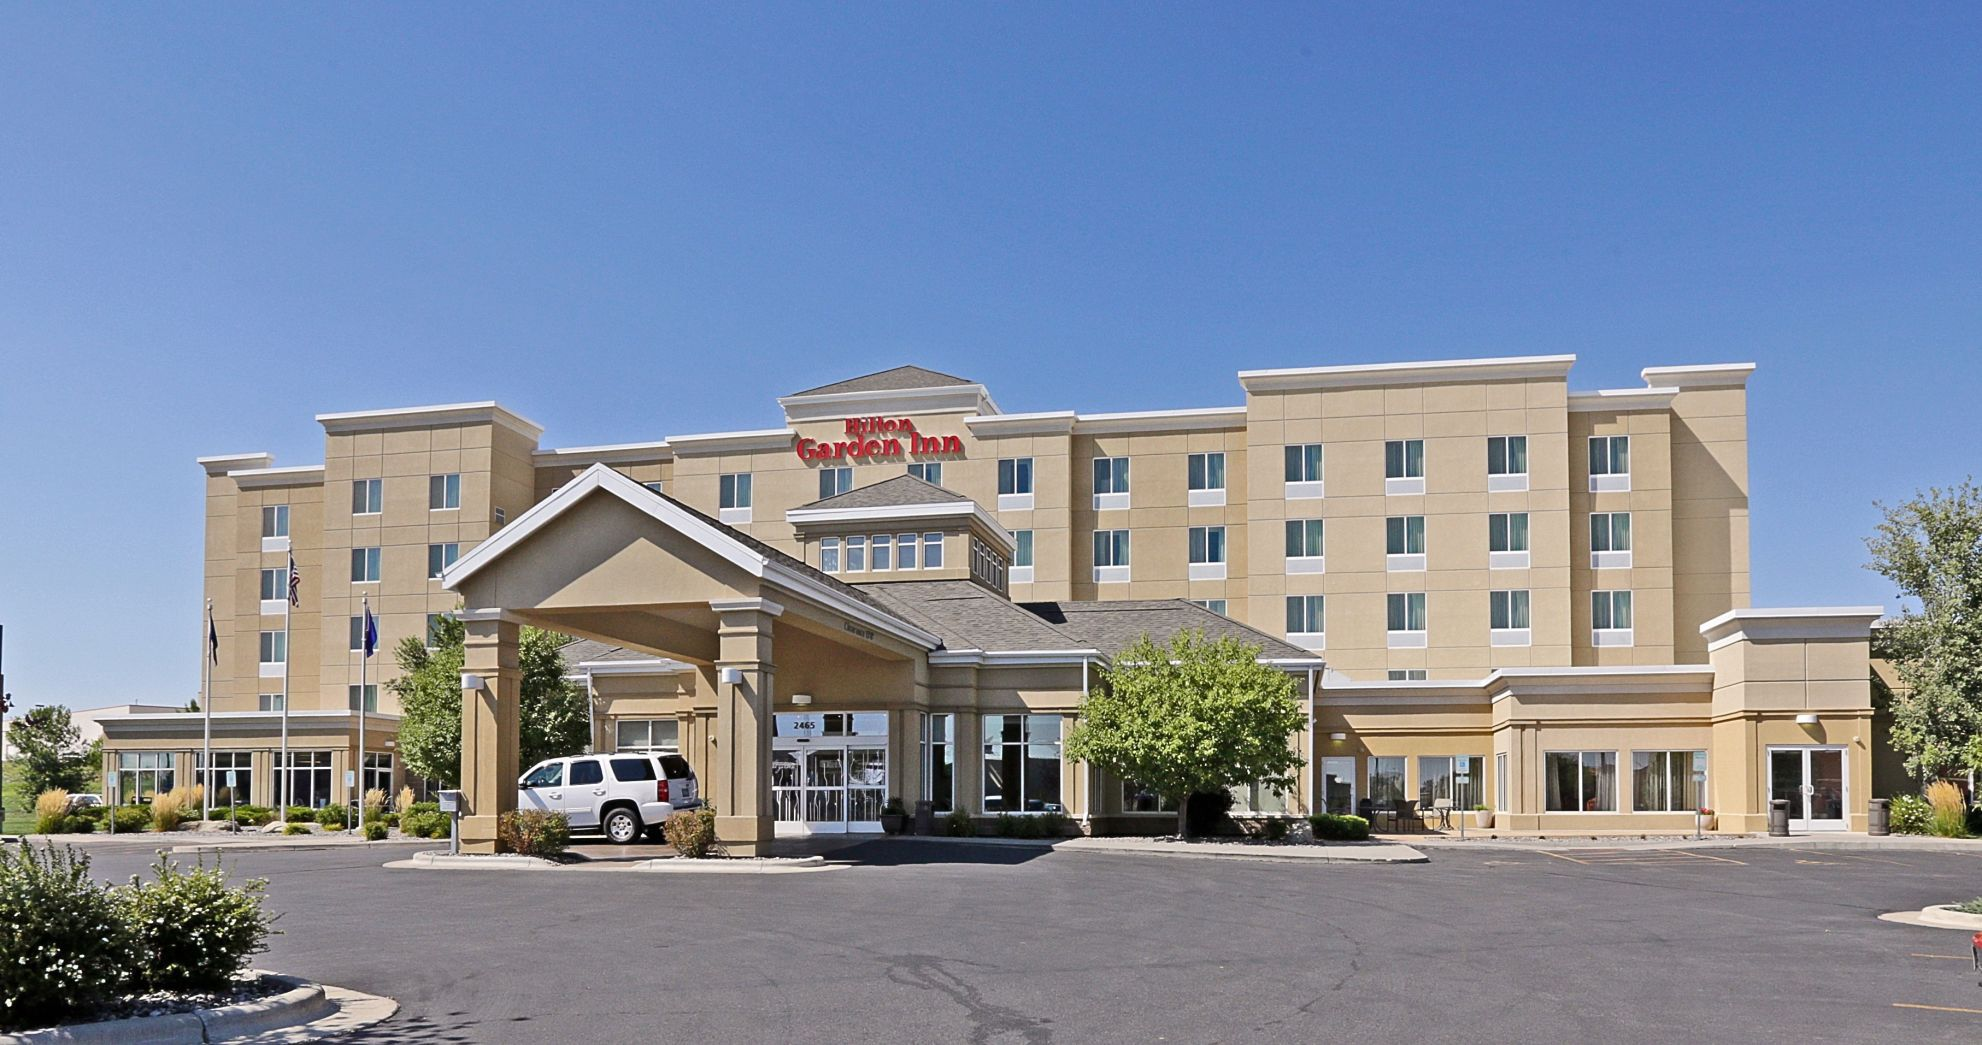 Hilton Garden Inn Gateway Hospitality Group pay 4M settlement